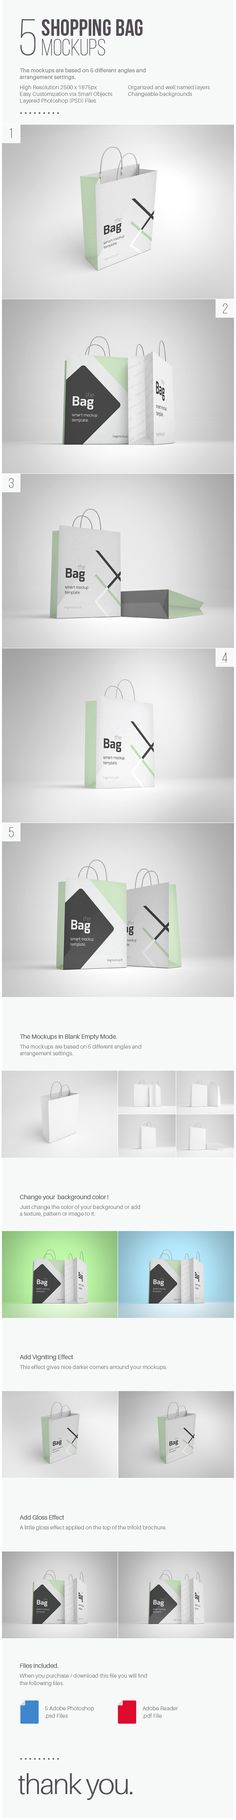 Free Bag Mockup (Psd) on Behance